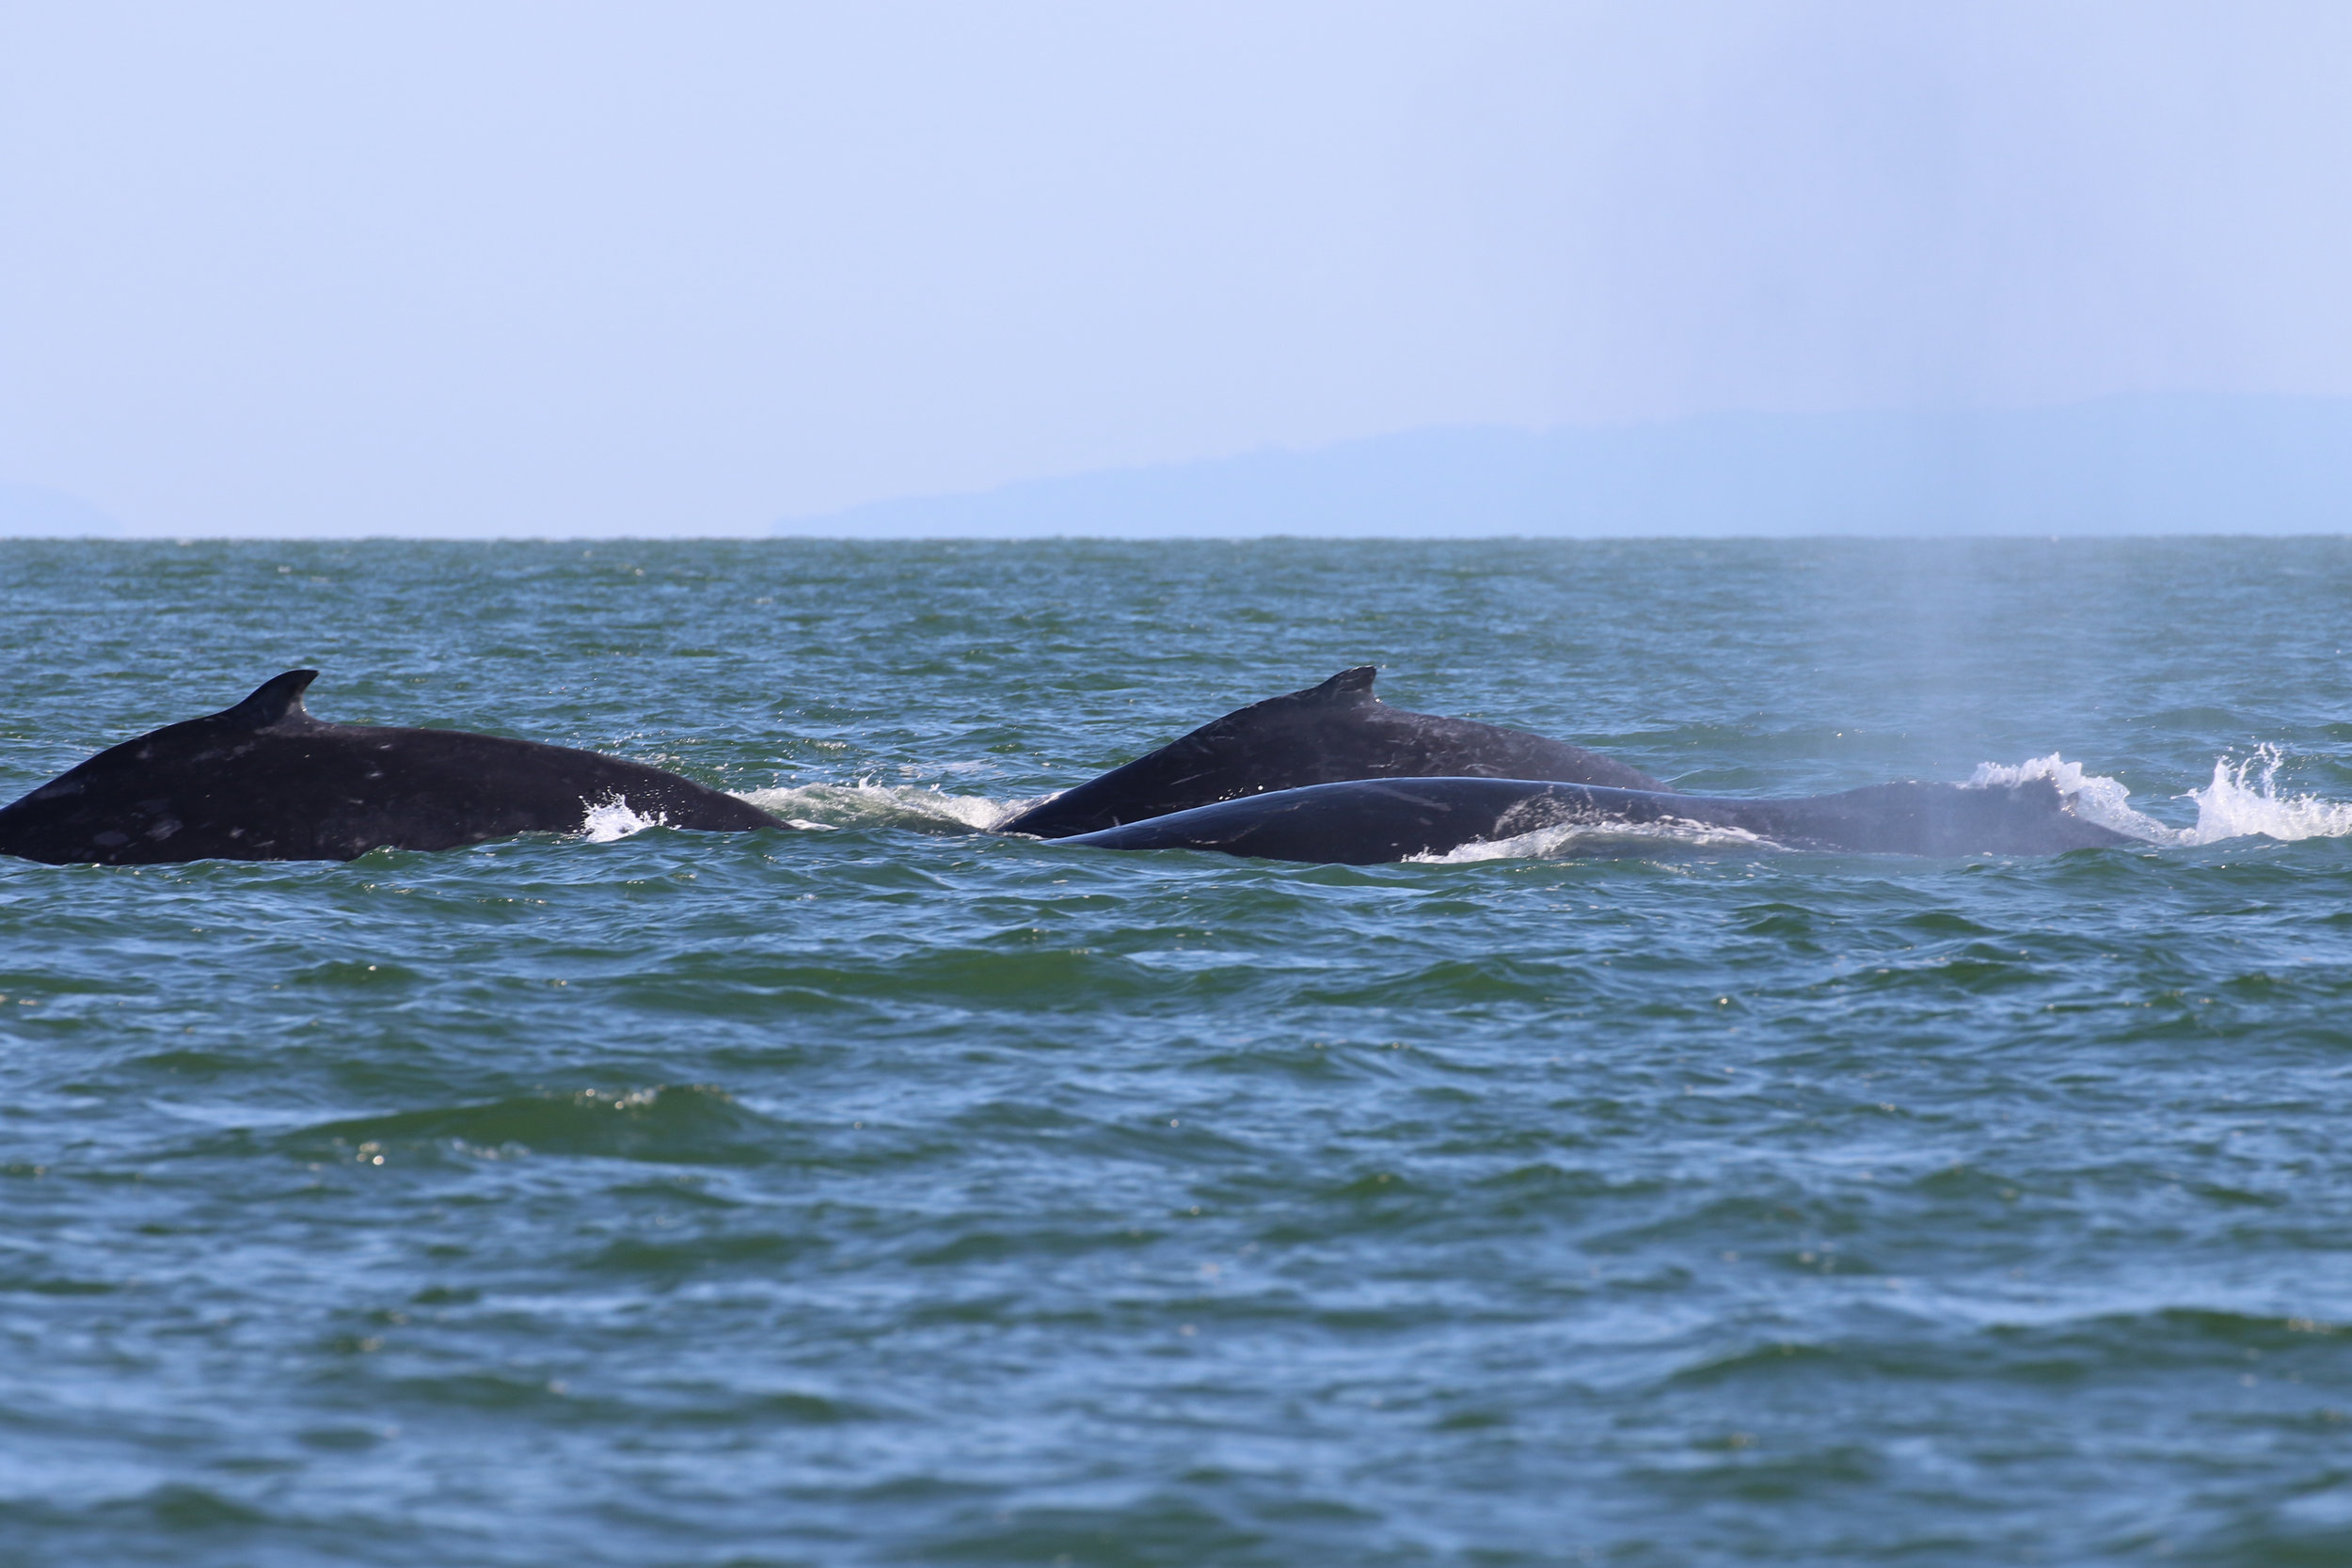 """Here we have BCX1210 """"Slate"""", her calf, and BCZ0298 """"Split Fin"""" surfacing together from left to right. Photo by Natalie Reichenbacher (3:30)."""